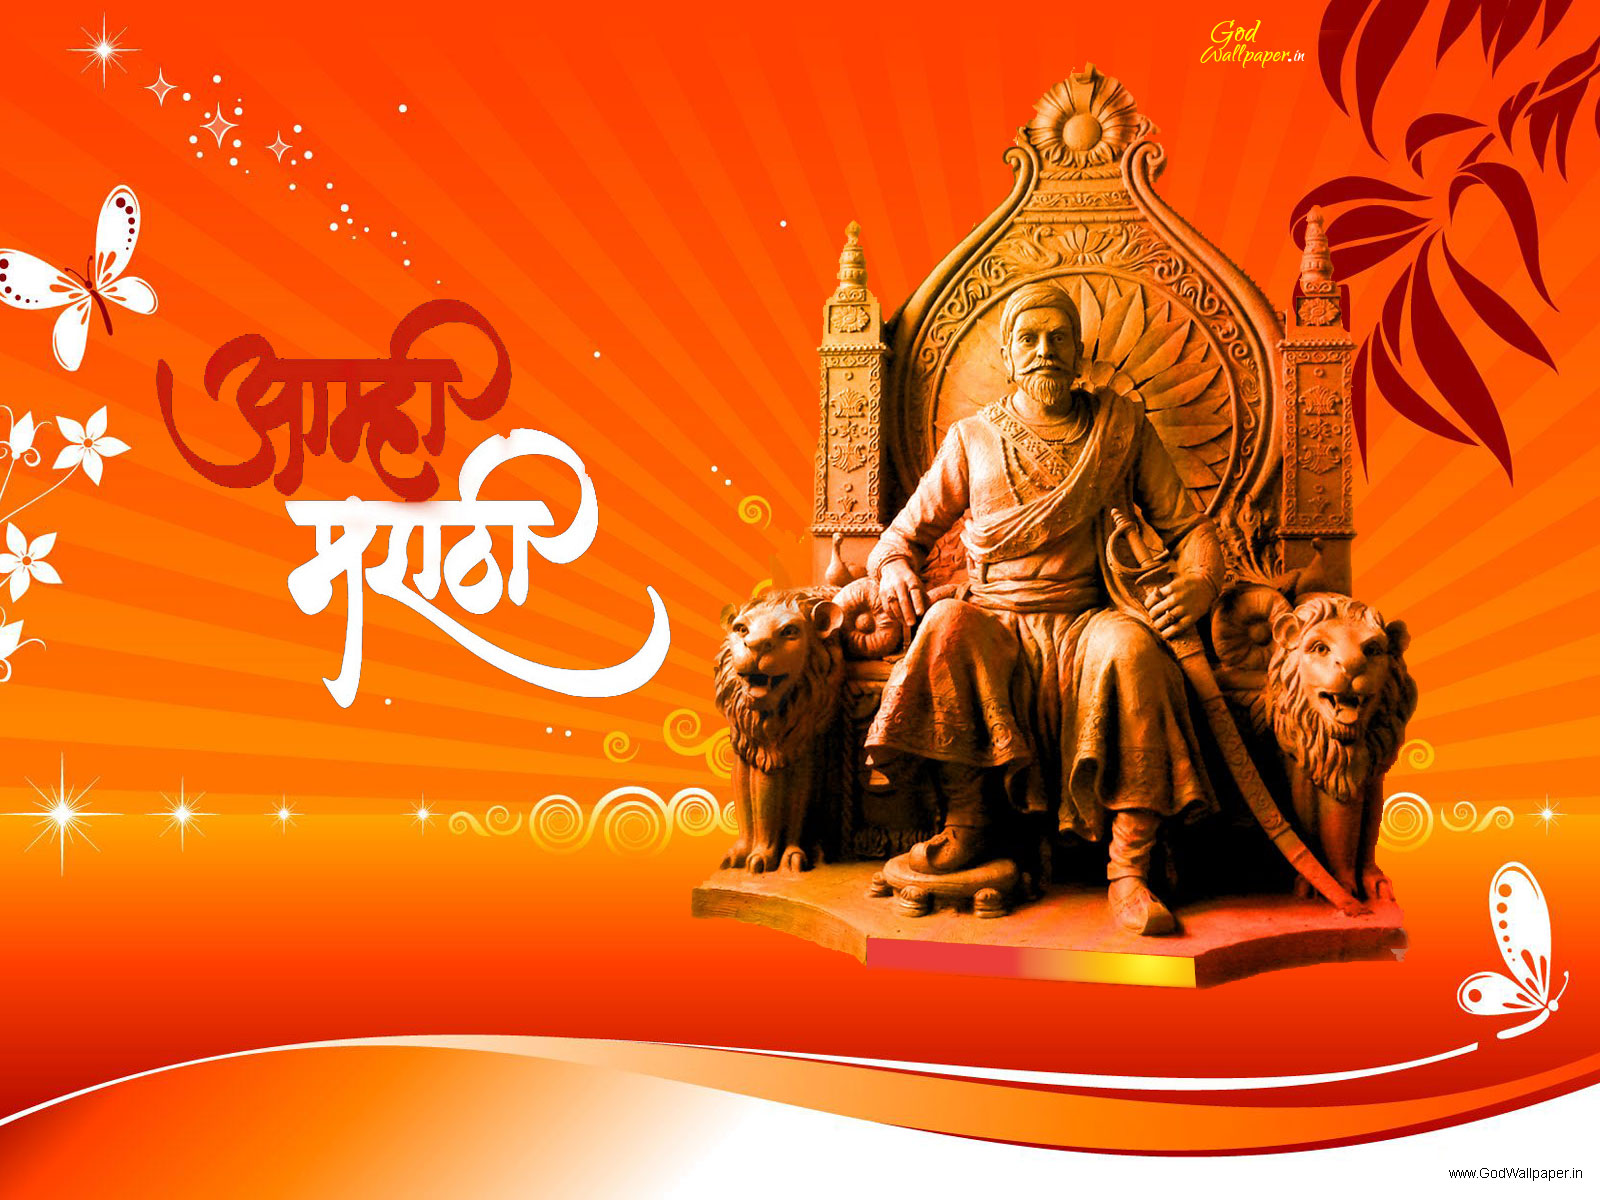 Hd wallpaper shivaji maharaj - Full View